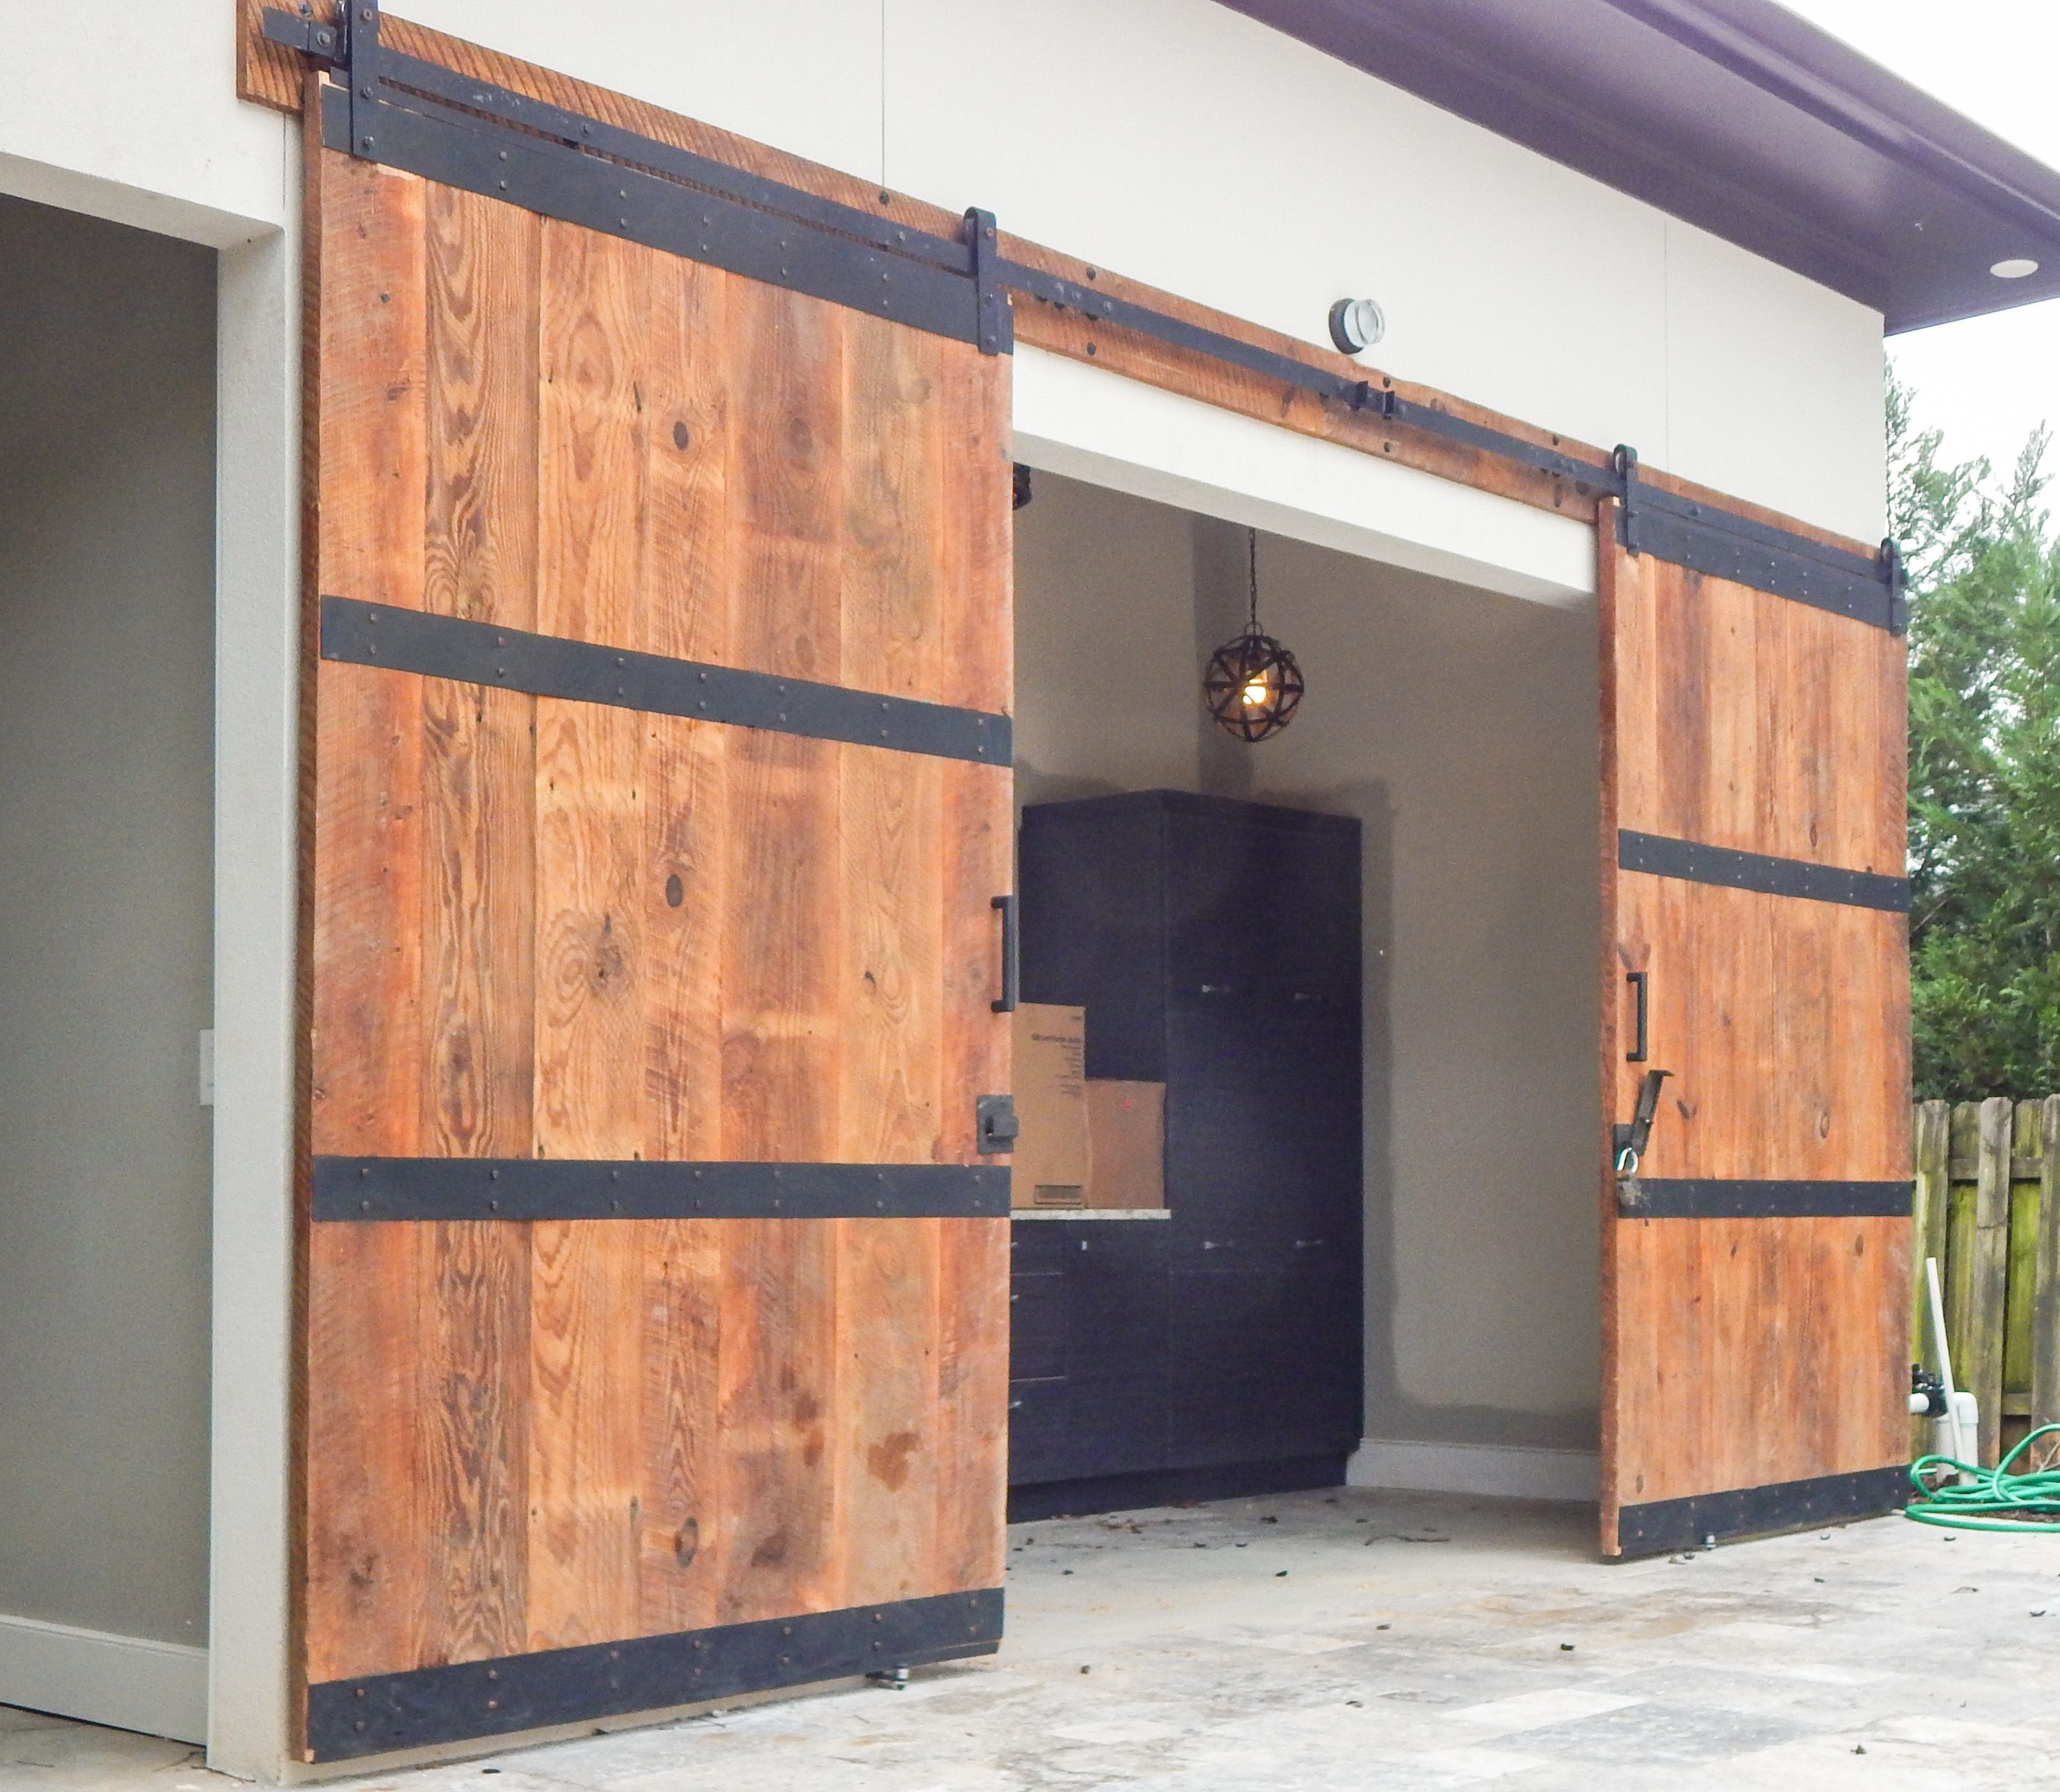 Barn Door Style Doors Metal Sliding Barn Doors Closet Doors Sliding Barn Door Exterior Barn Doors Barn Door Garage Exterior Sliding Barn Doors